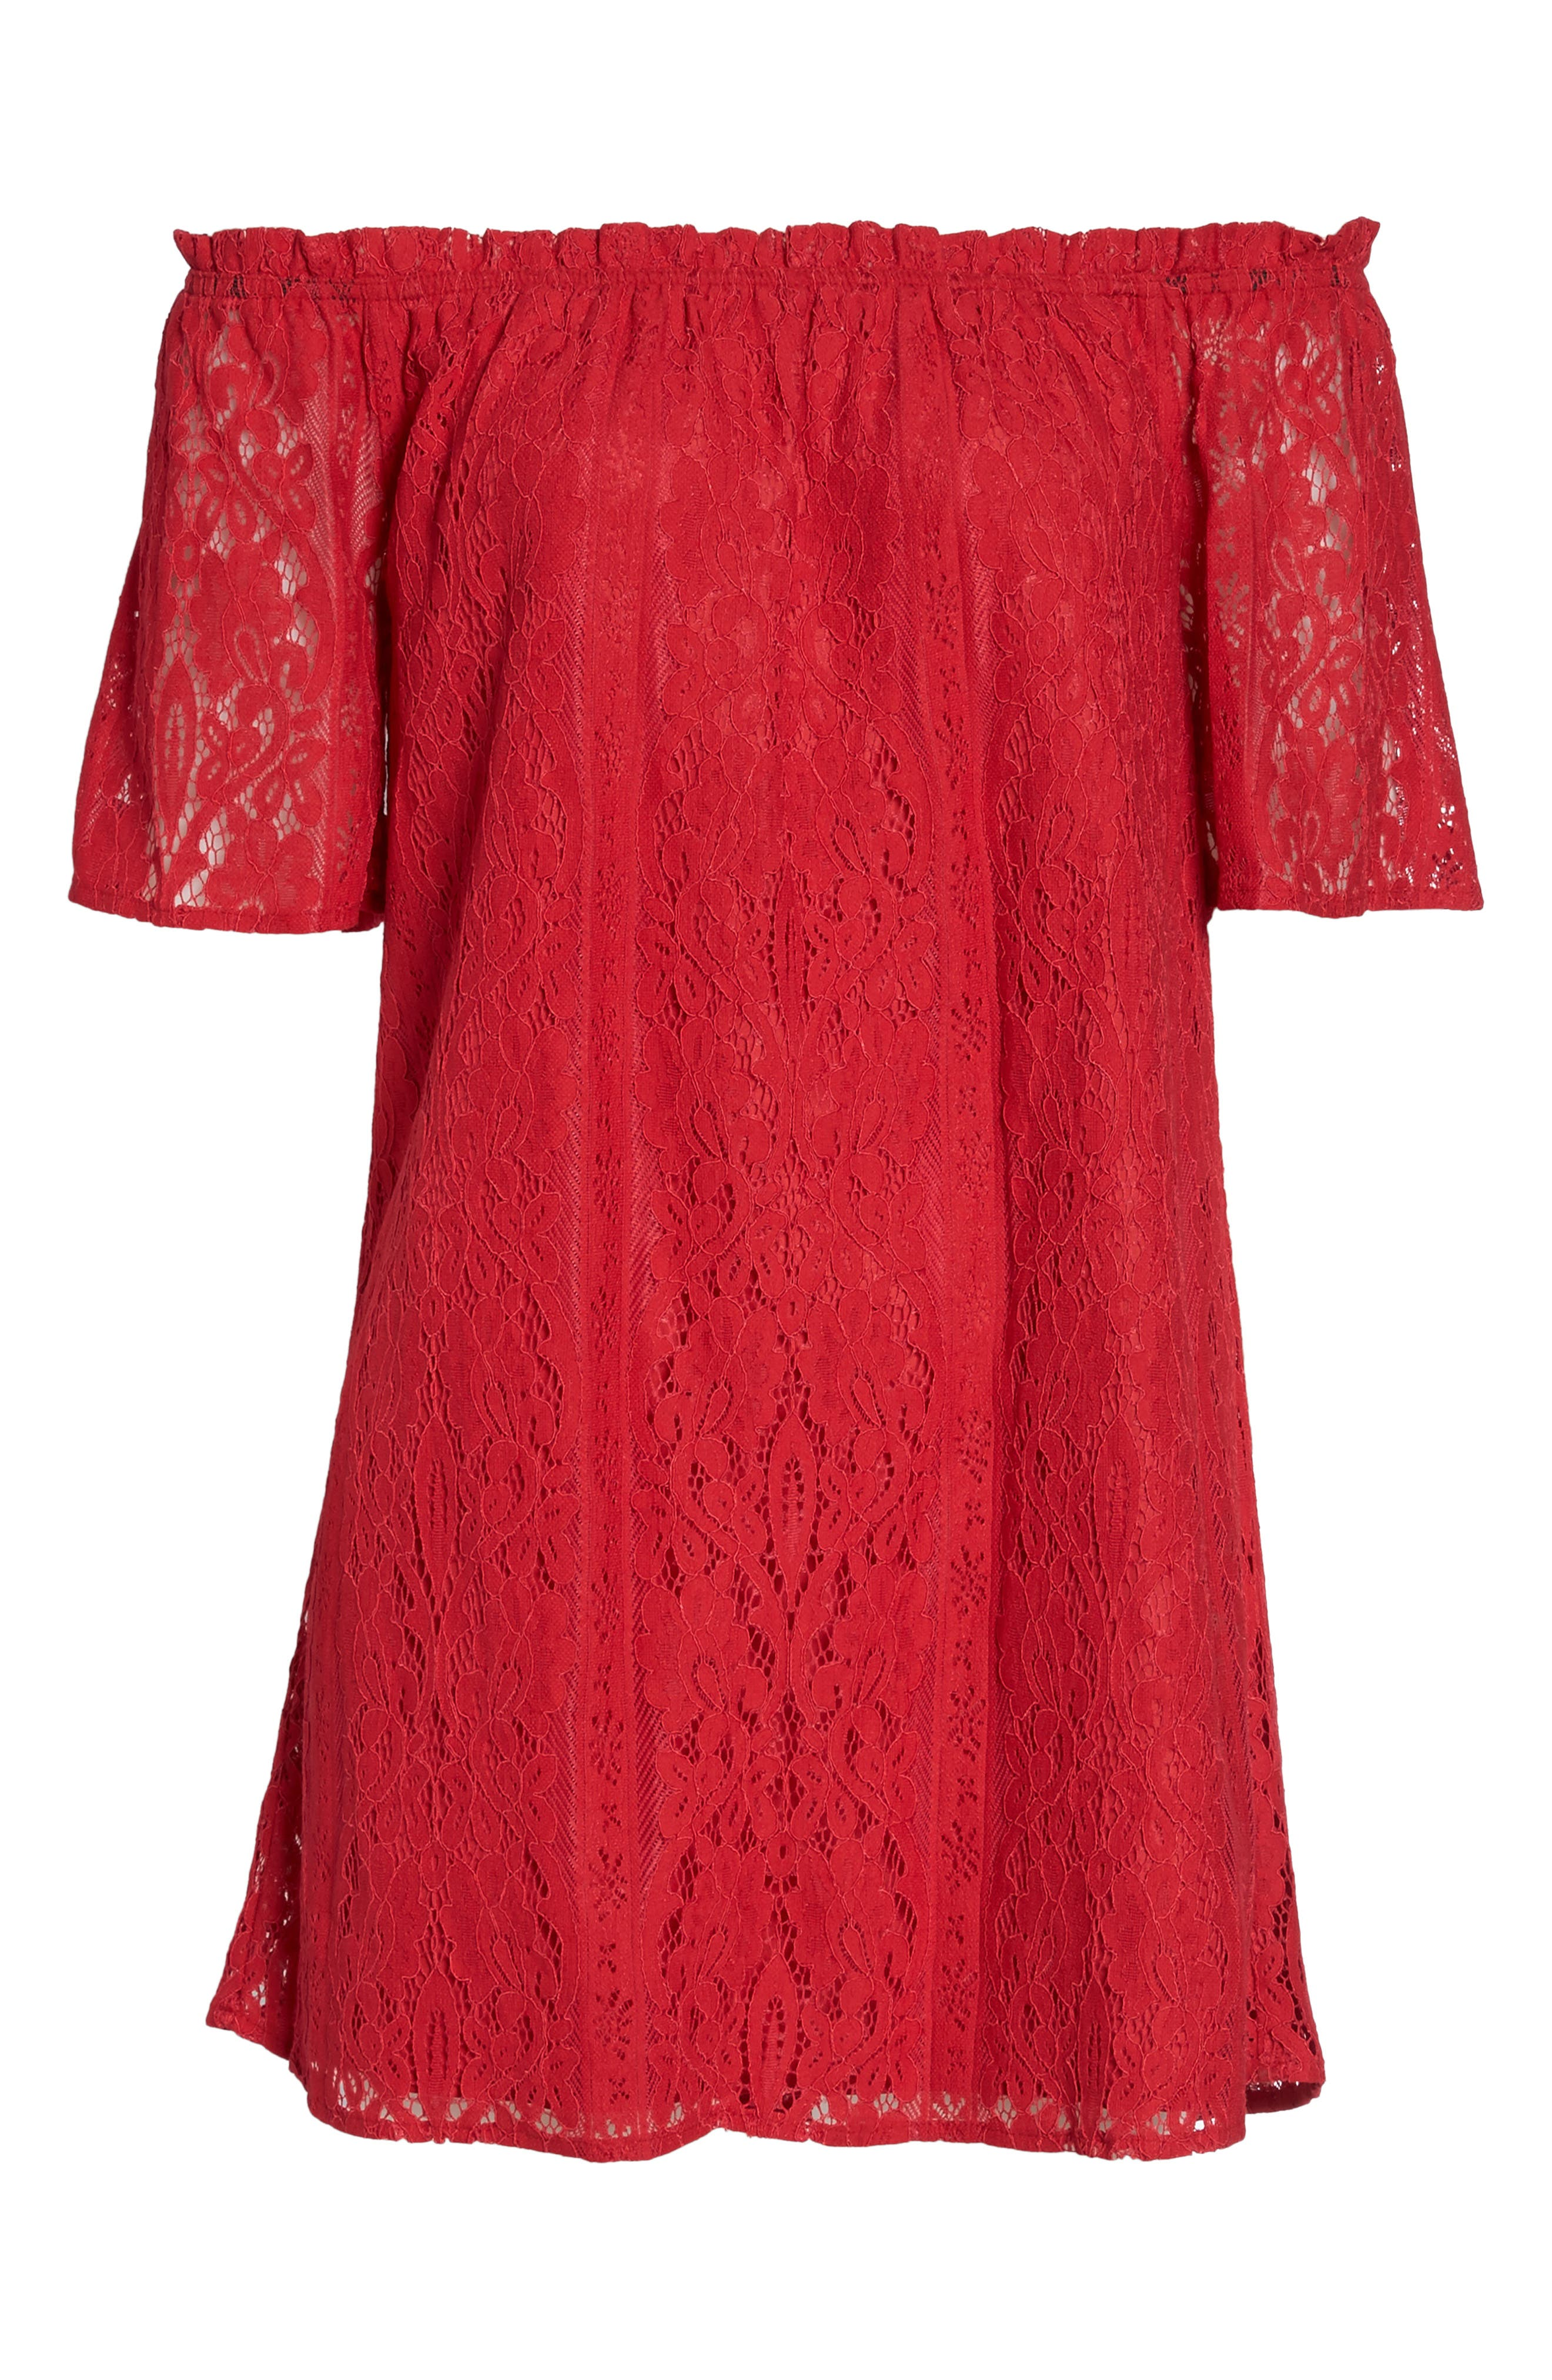 Erica Off the Shoulder Lace Shift Dress,                             Alternate thumbnail 6, color,                             600